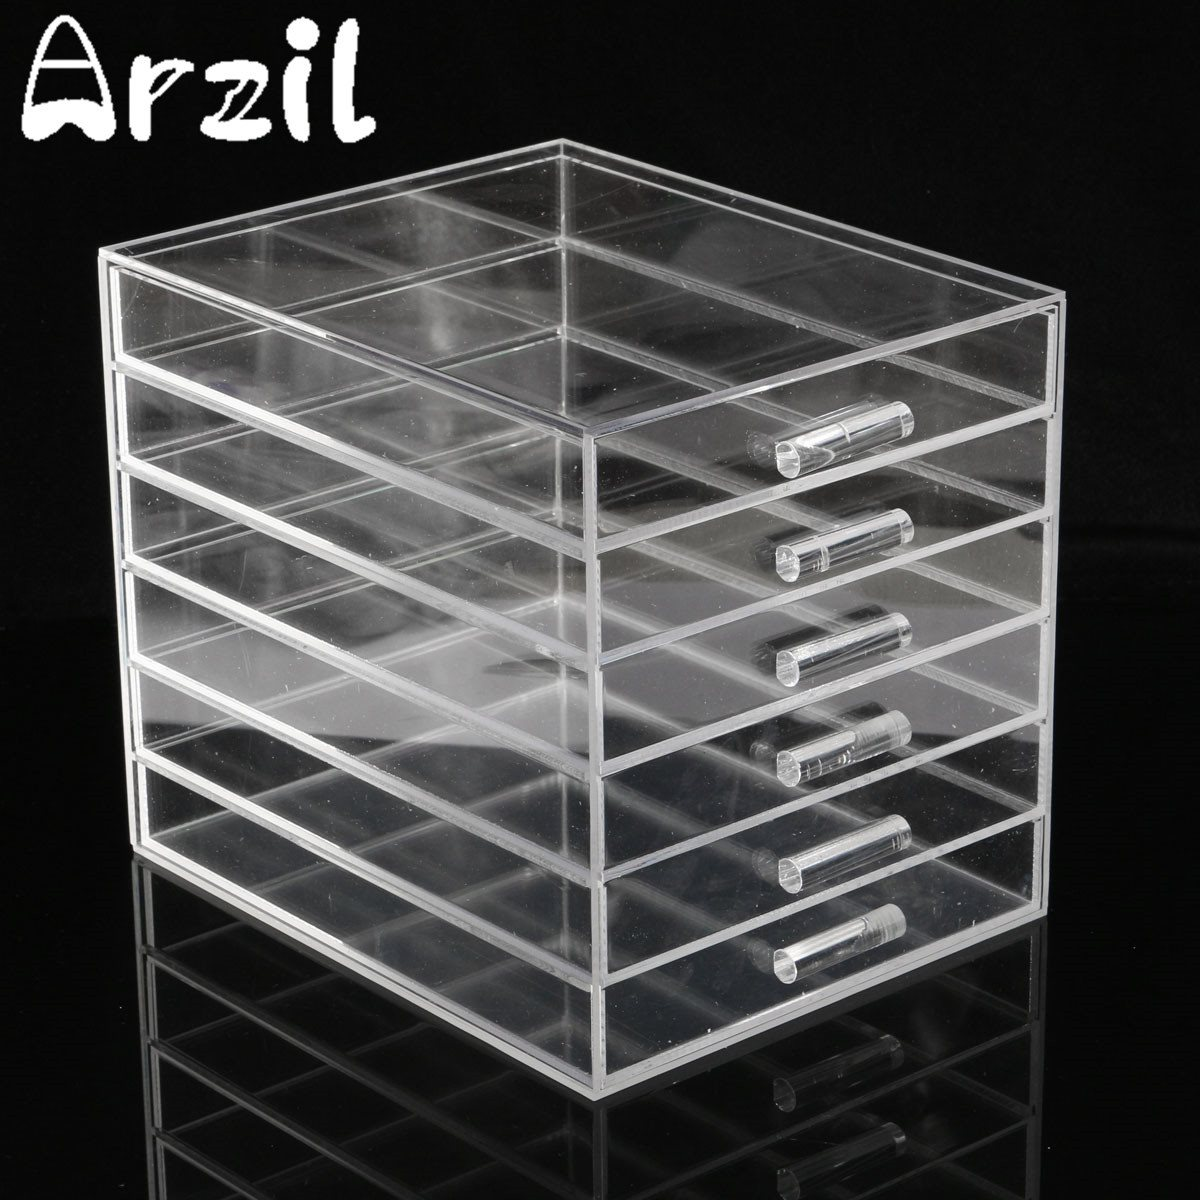 6 Drawers Clear Acrylic Storage Case Box Cosmetic Makeup Jewelry Organizer Holder Household Tools Accessories